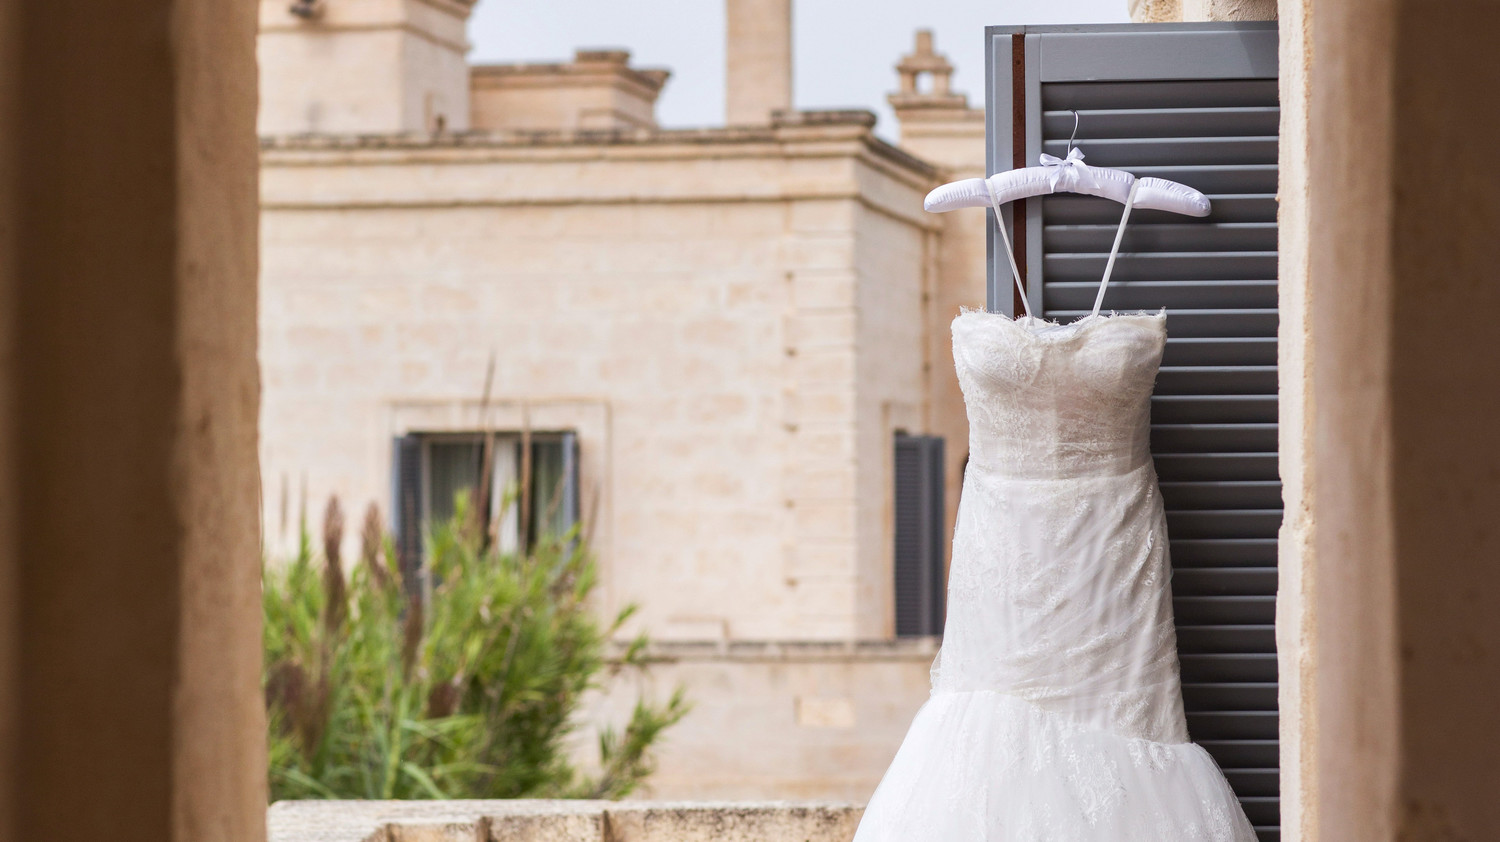 How To Steam Your Wedding Dress—Without Ruining It